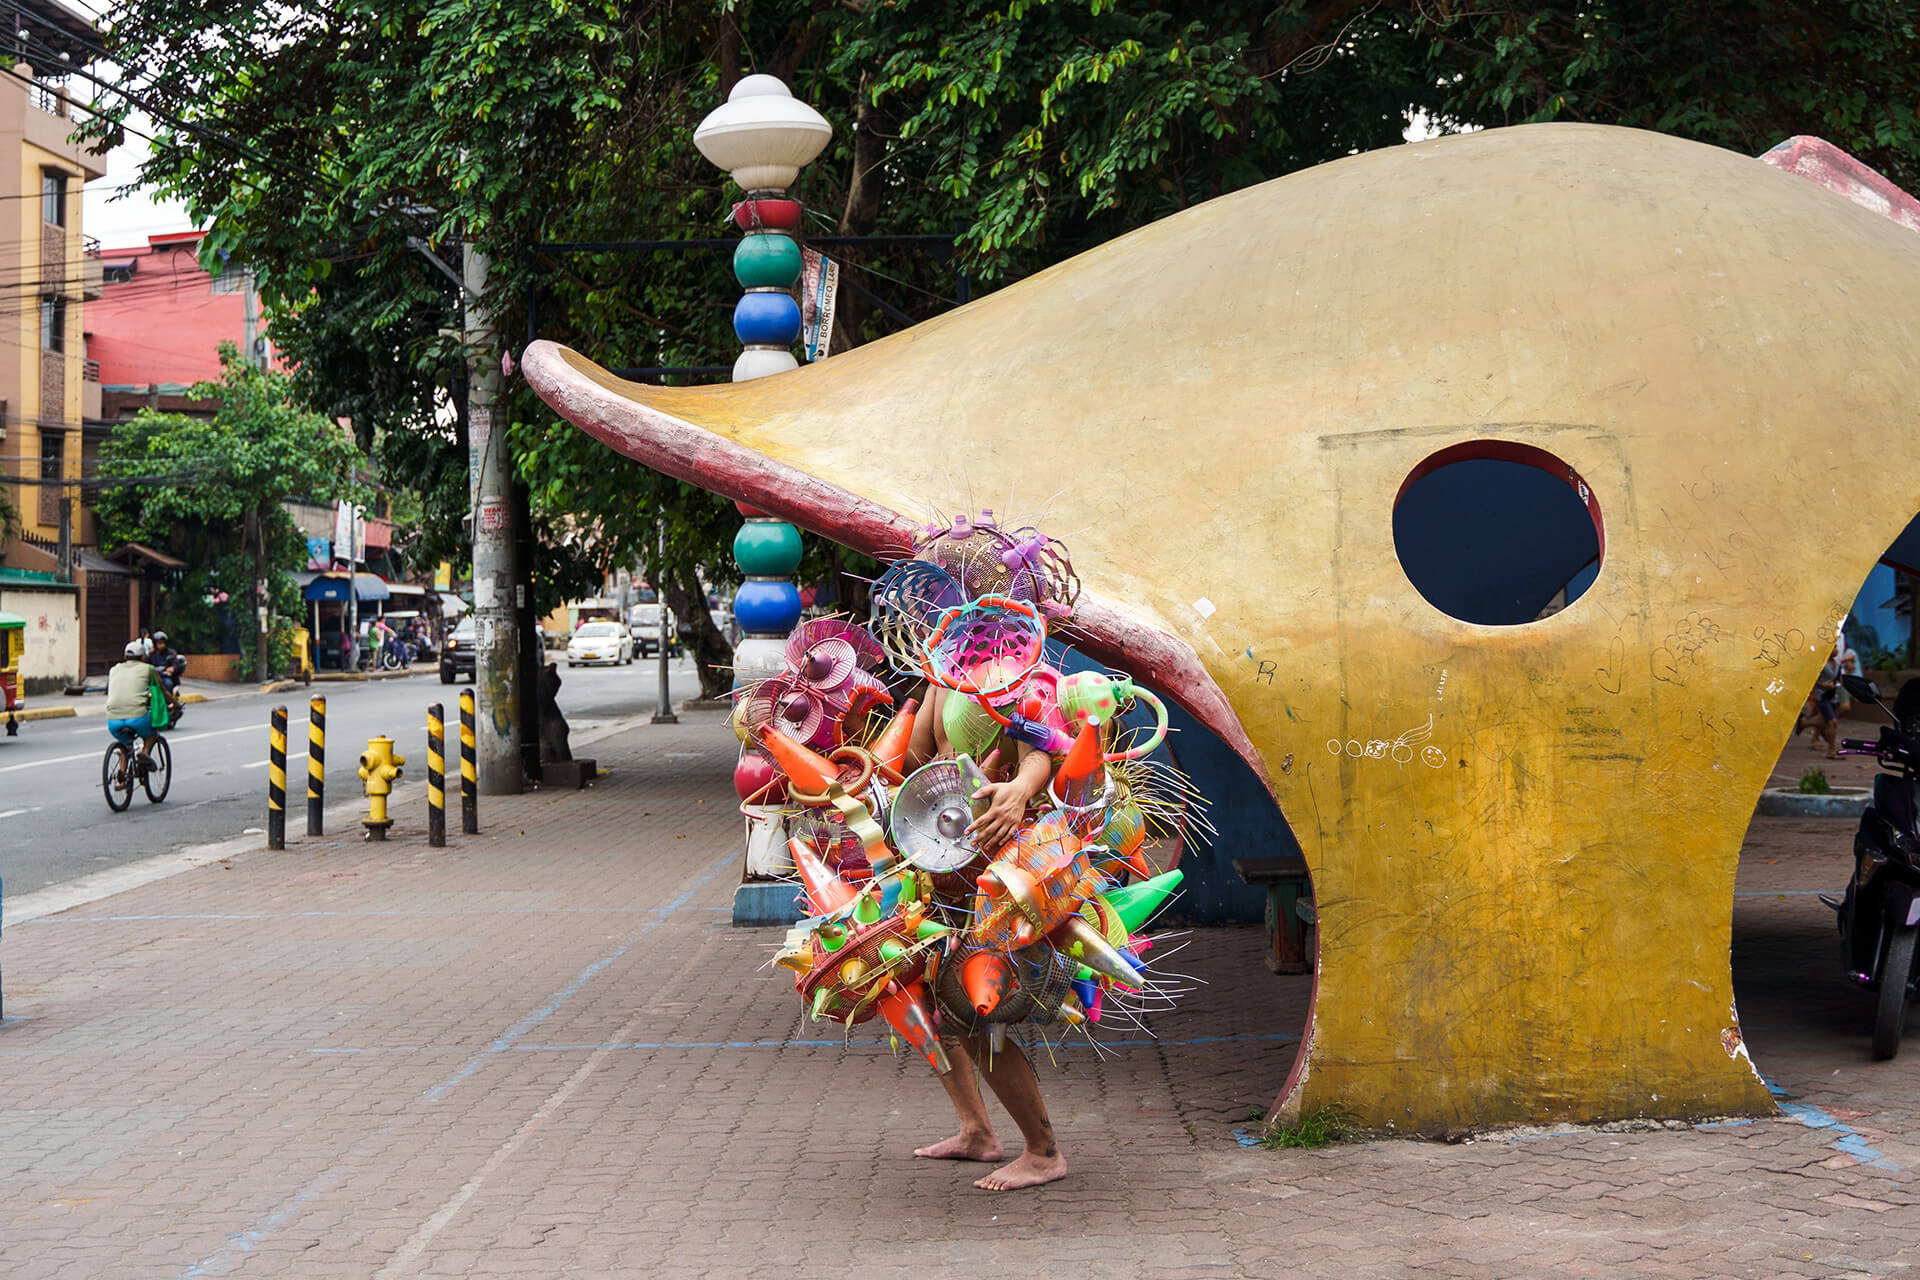 Art Installations in public spaces - By the waiting shed (Aliens of Manila series)